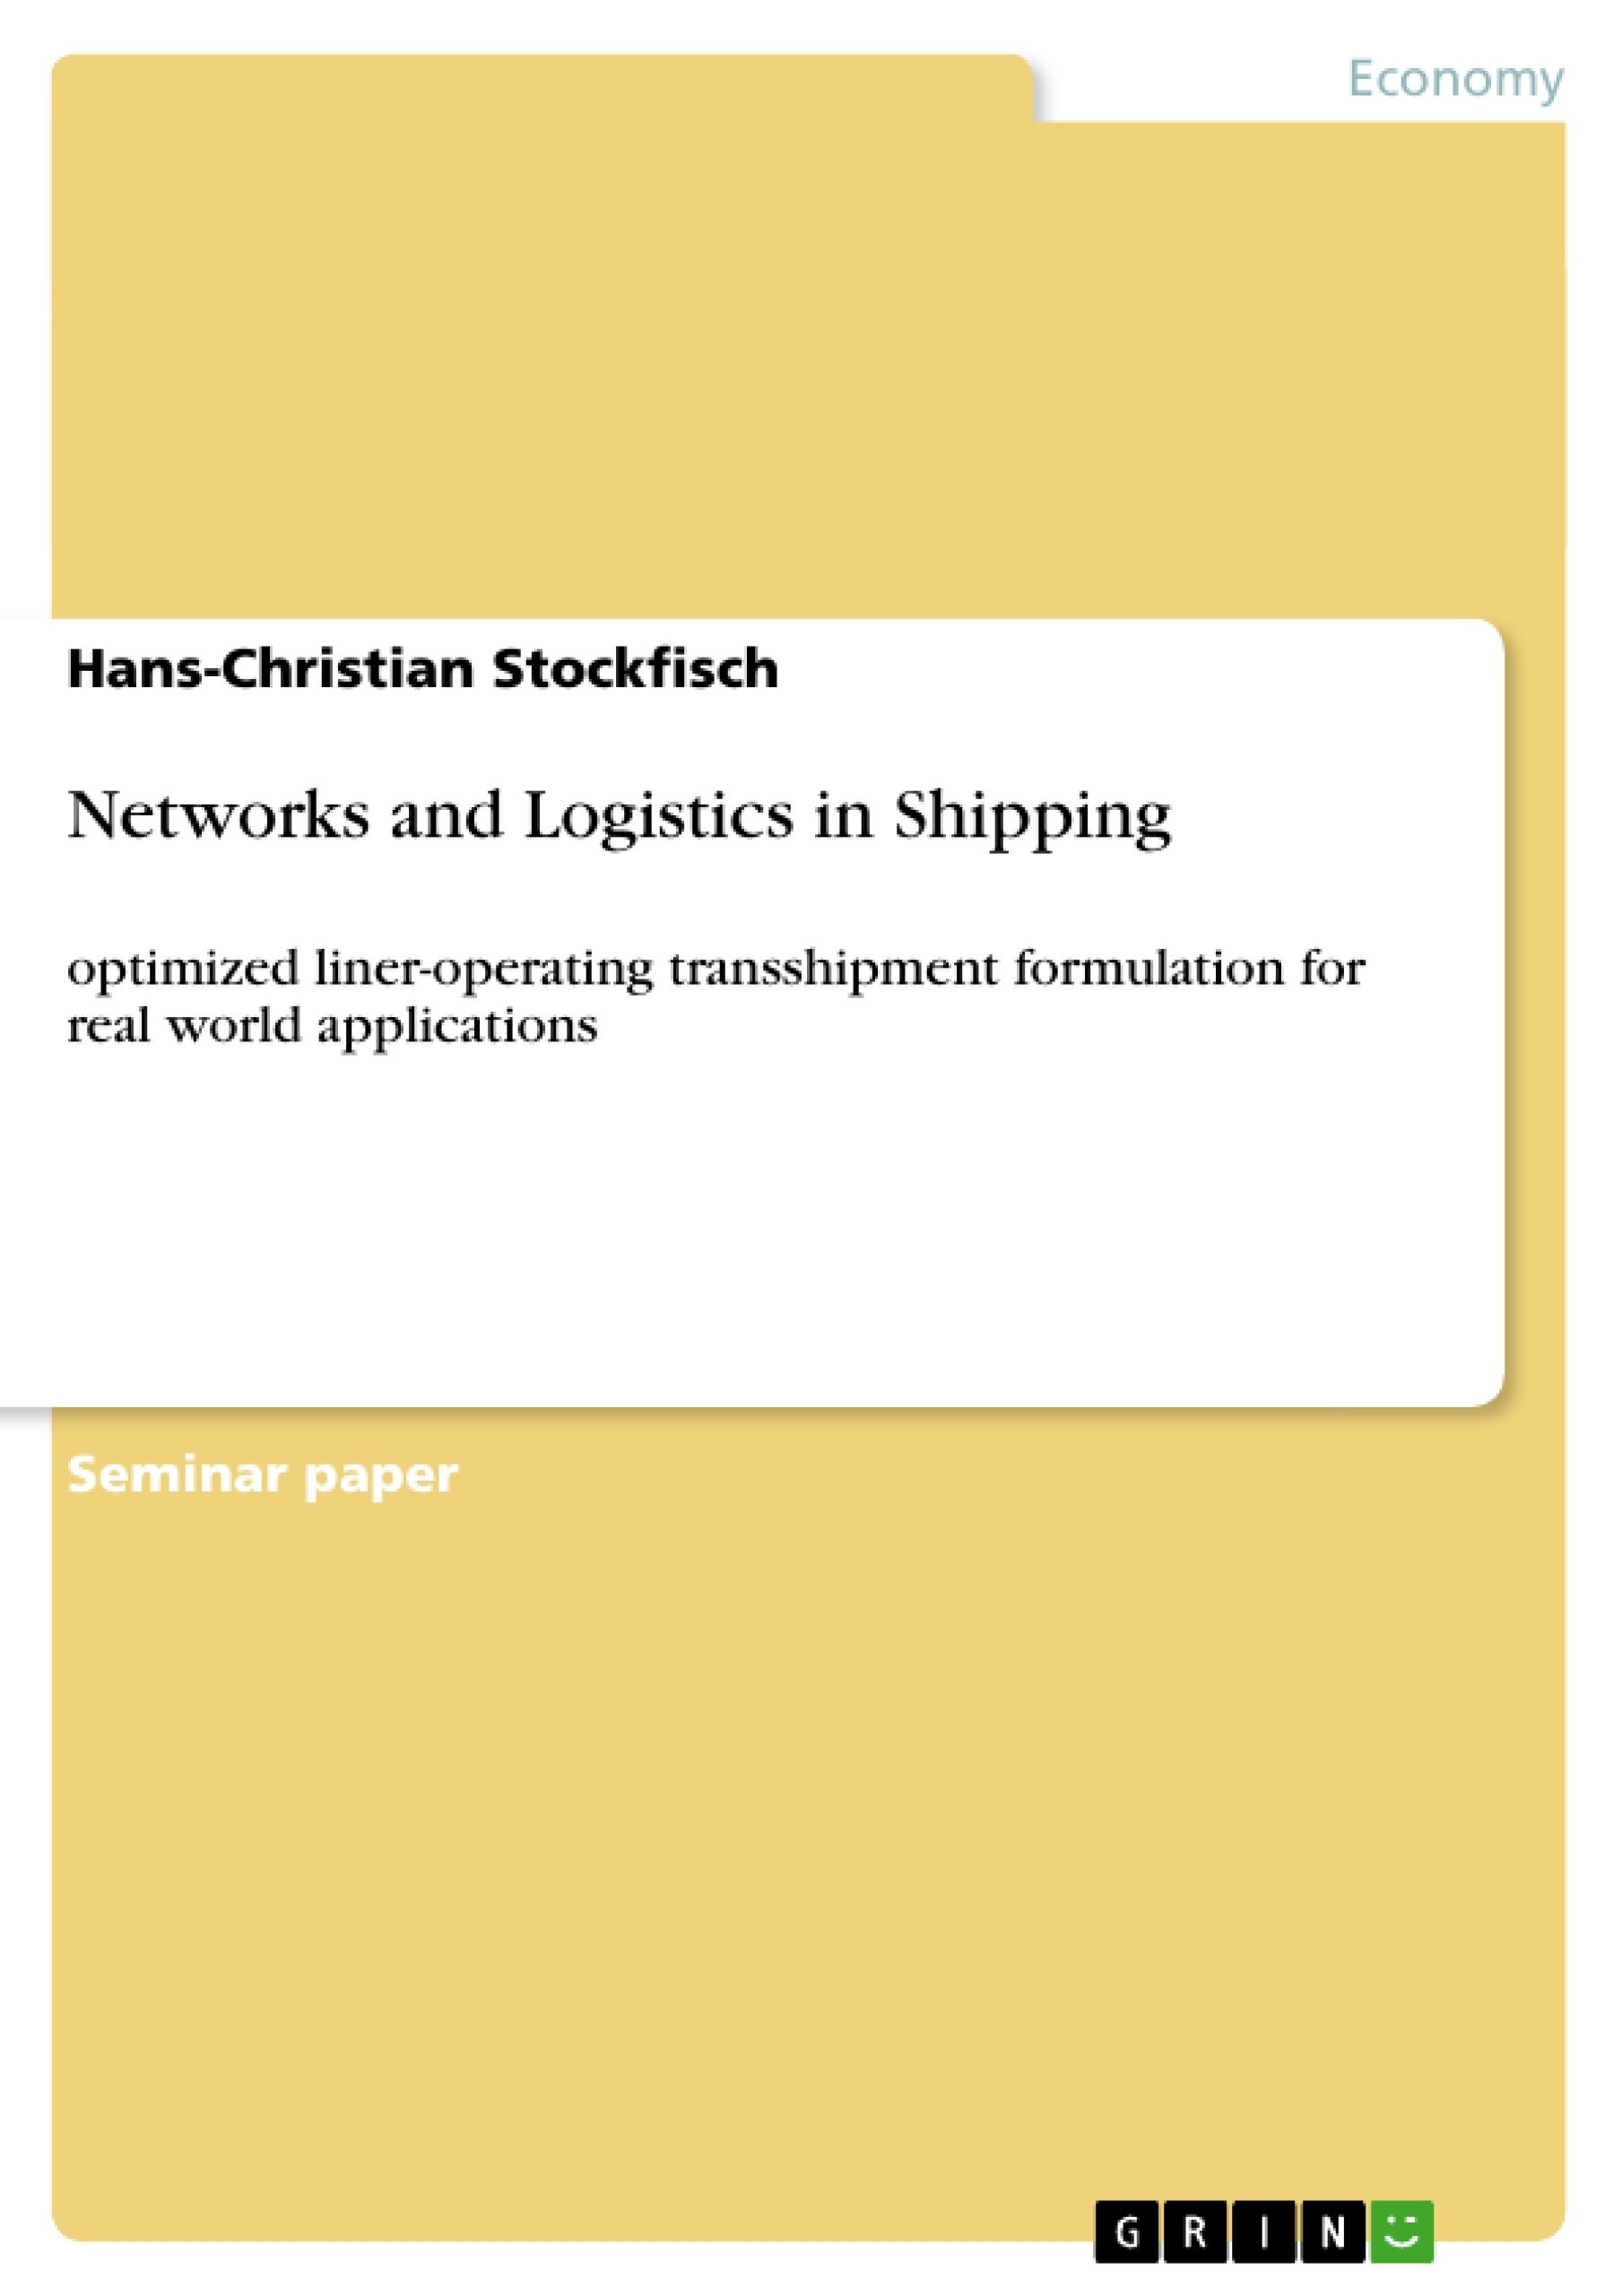 Title: Networks and Logistics in Shipping